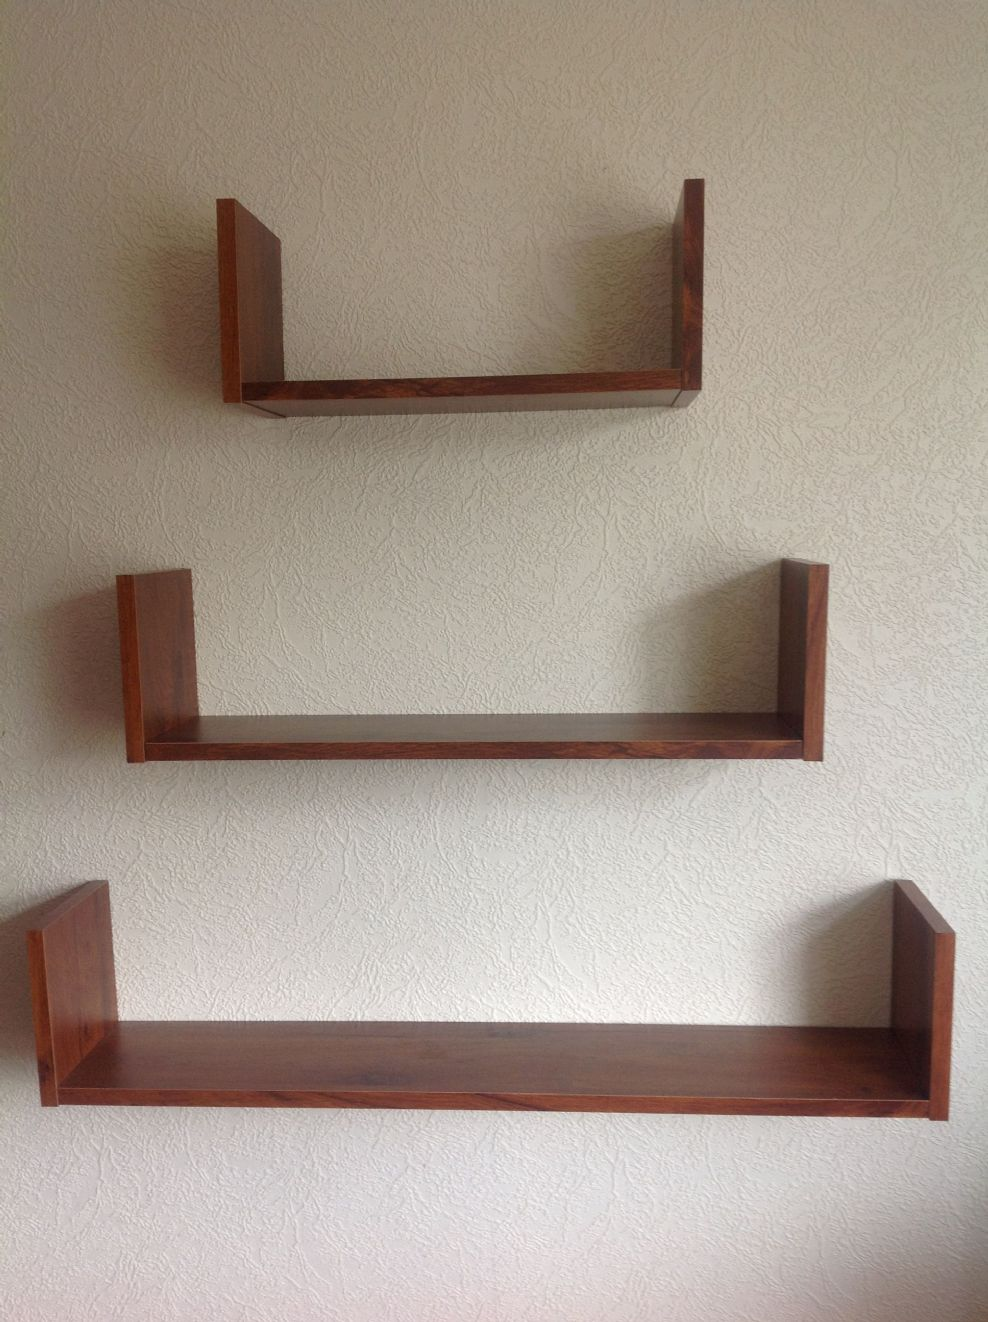 Fullsize Of Build Wall Mounted Bookshelves